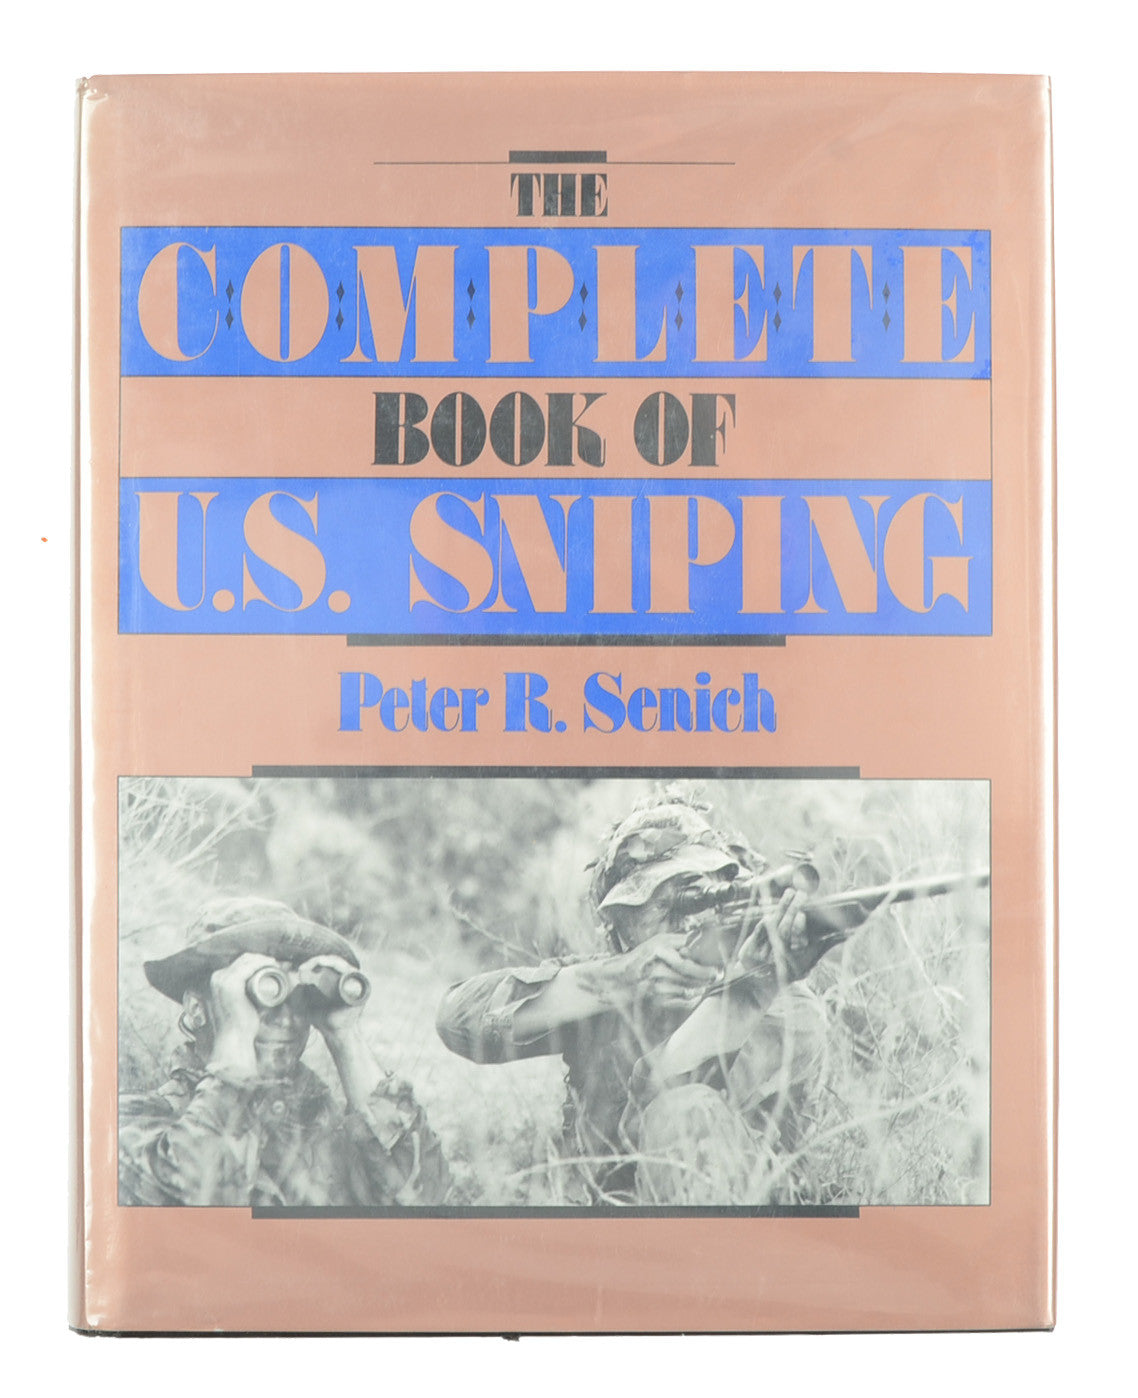 THE COMPLETE BOOK OF U.S. SNIPING